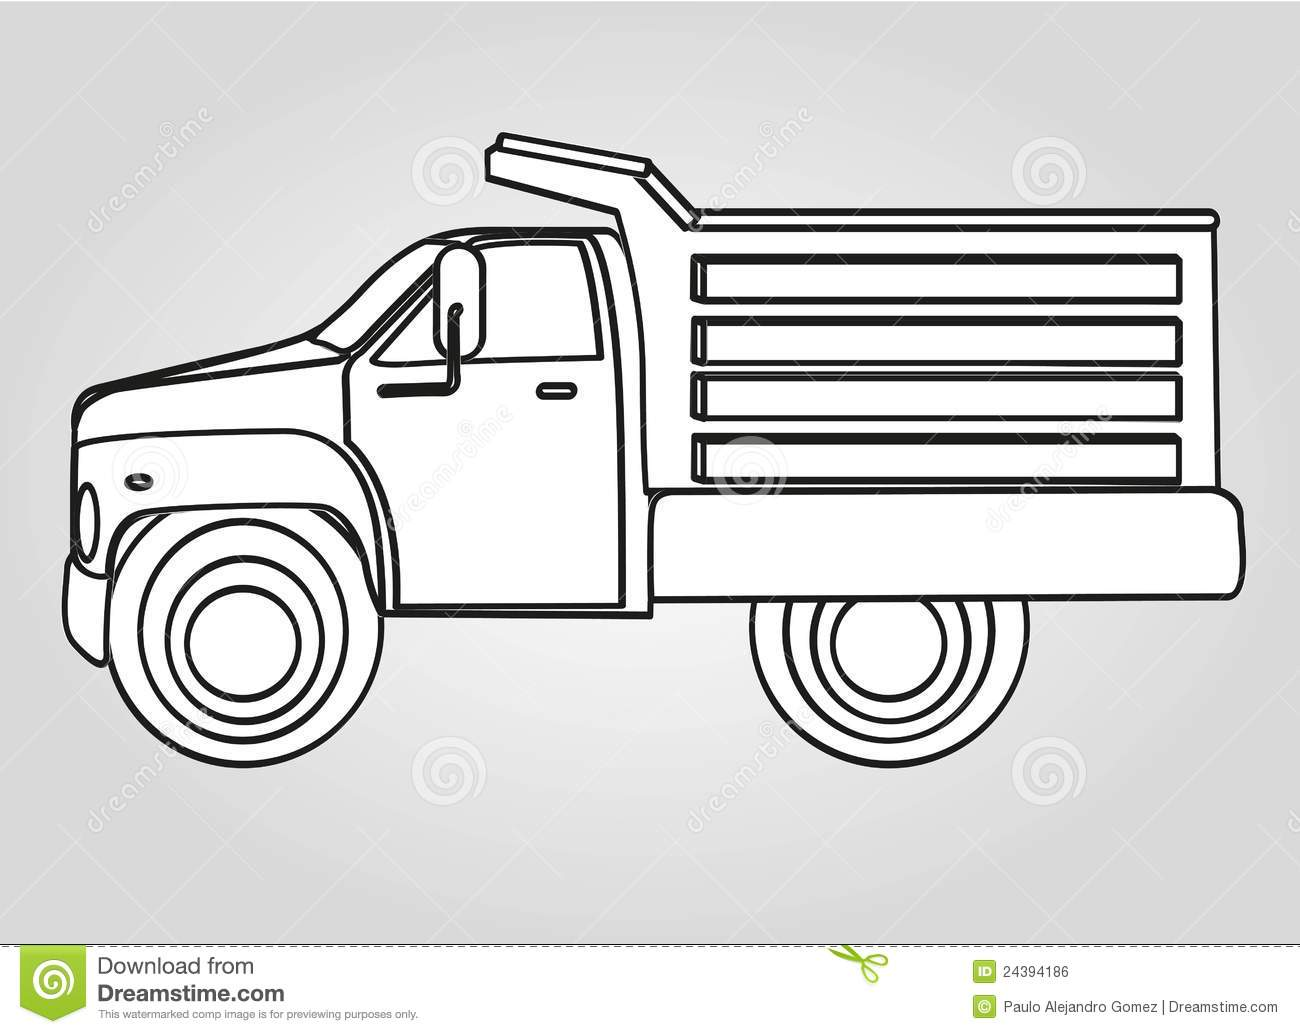 Drawing dump truck stock illustration. Illustration of ...